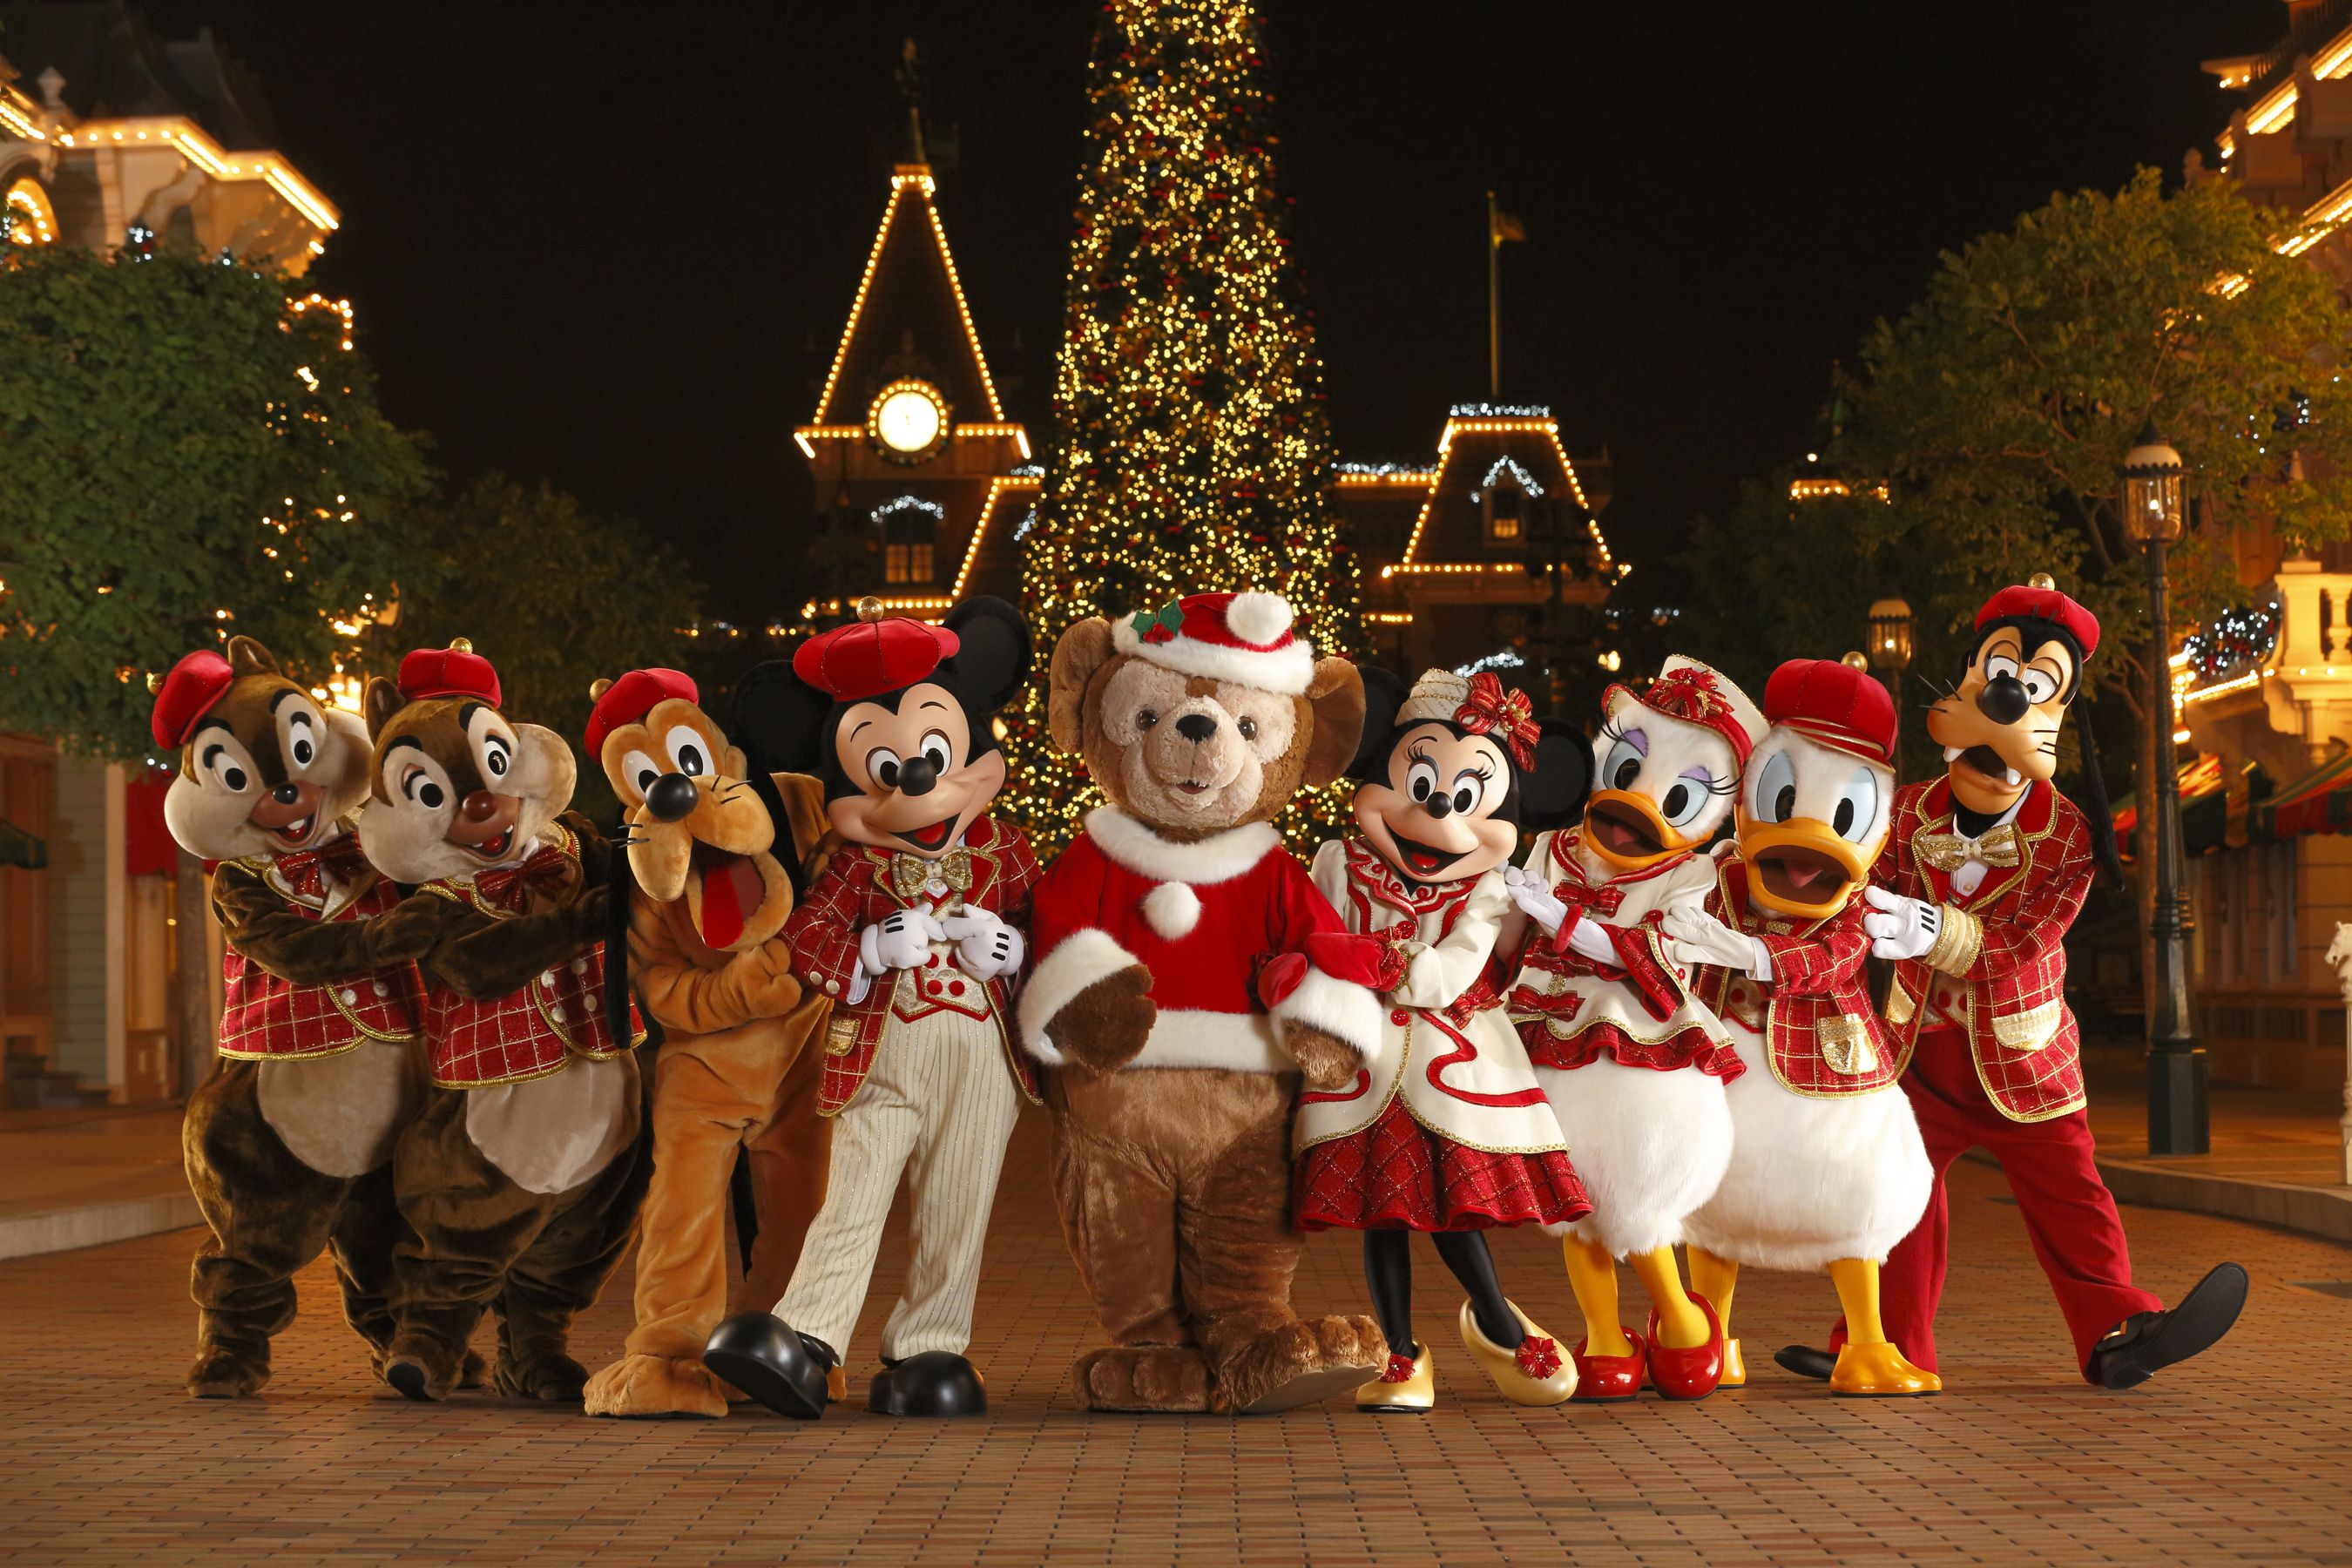 All Our Favorite Disney Charcters Wearing Their Christmas Costumes At Hk Disneyland Disney World Christmas Disney Christmas Disney Very Merry Christmas